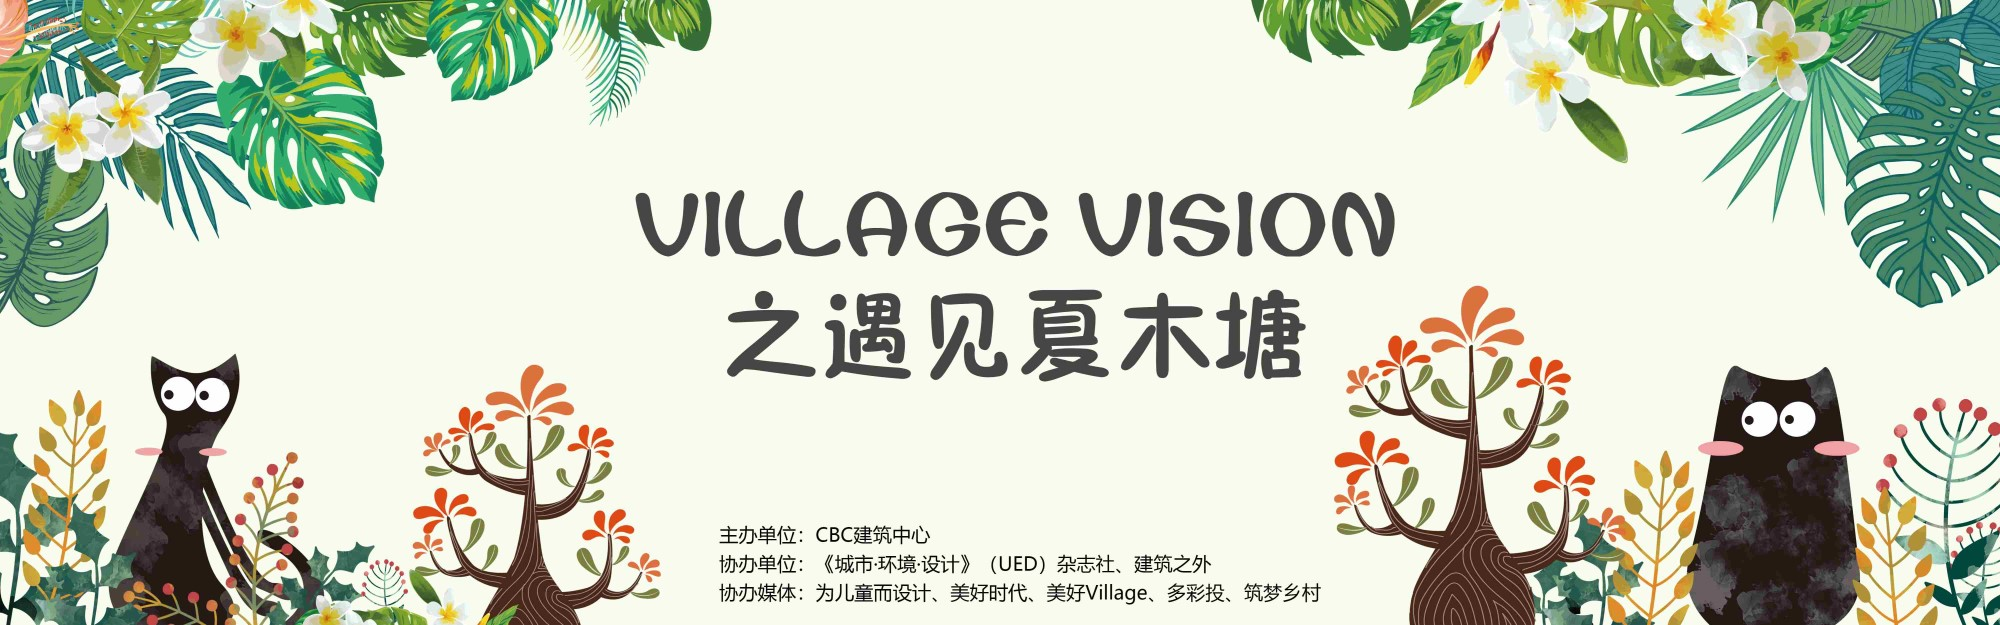 VILLAGE VISION 之遇见夏木塘data-holder-rendered=